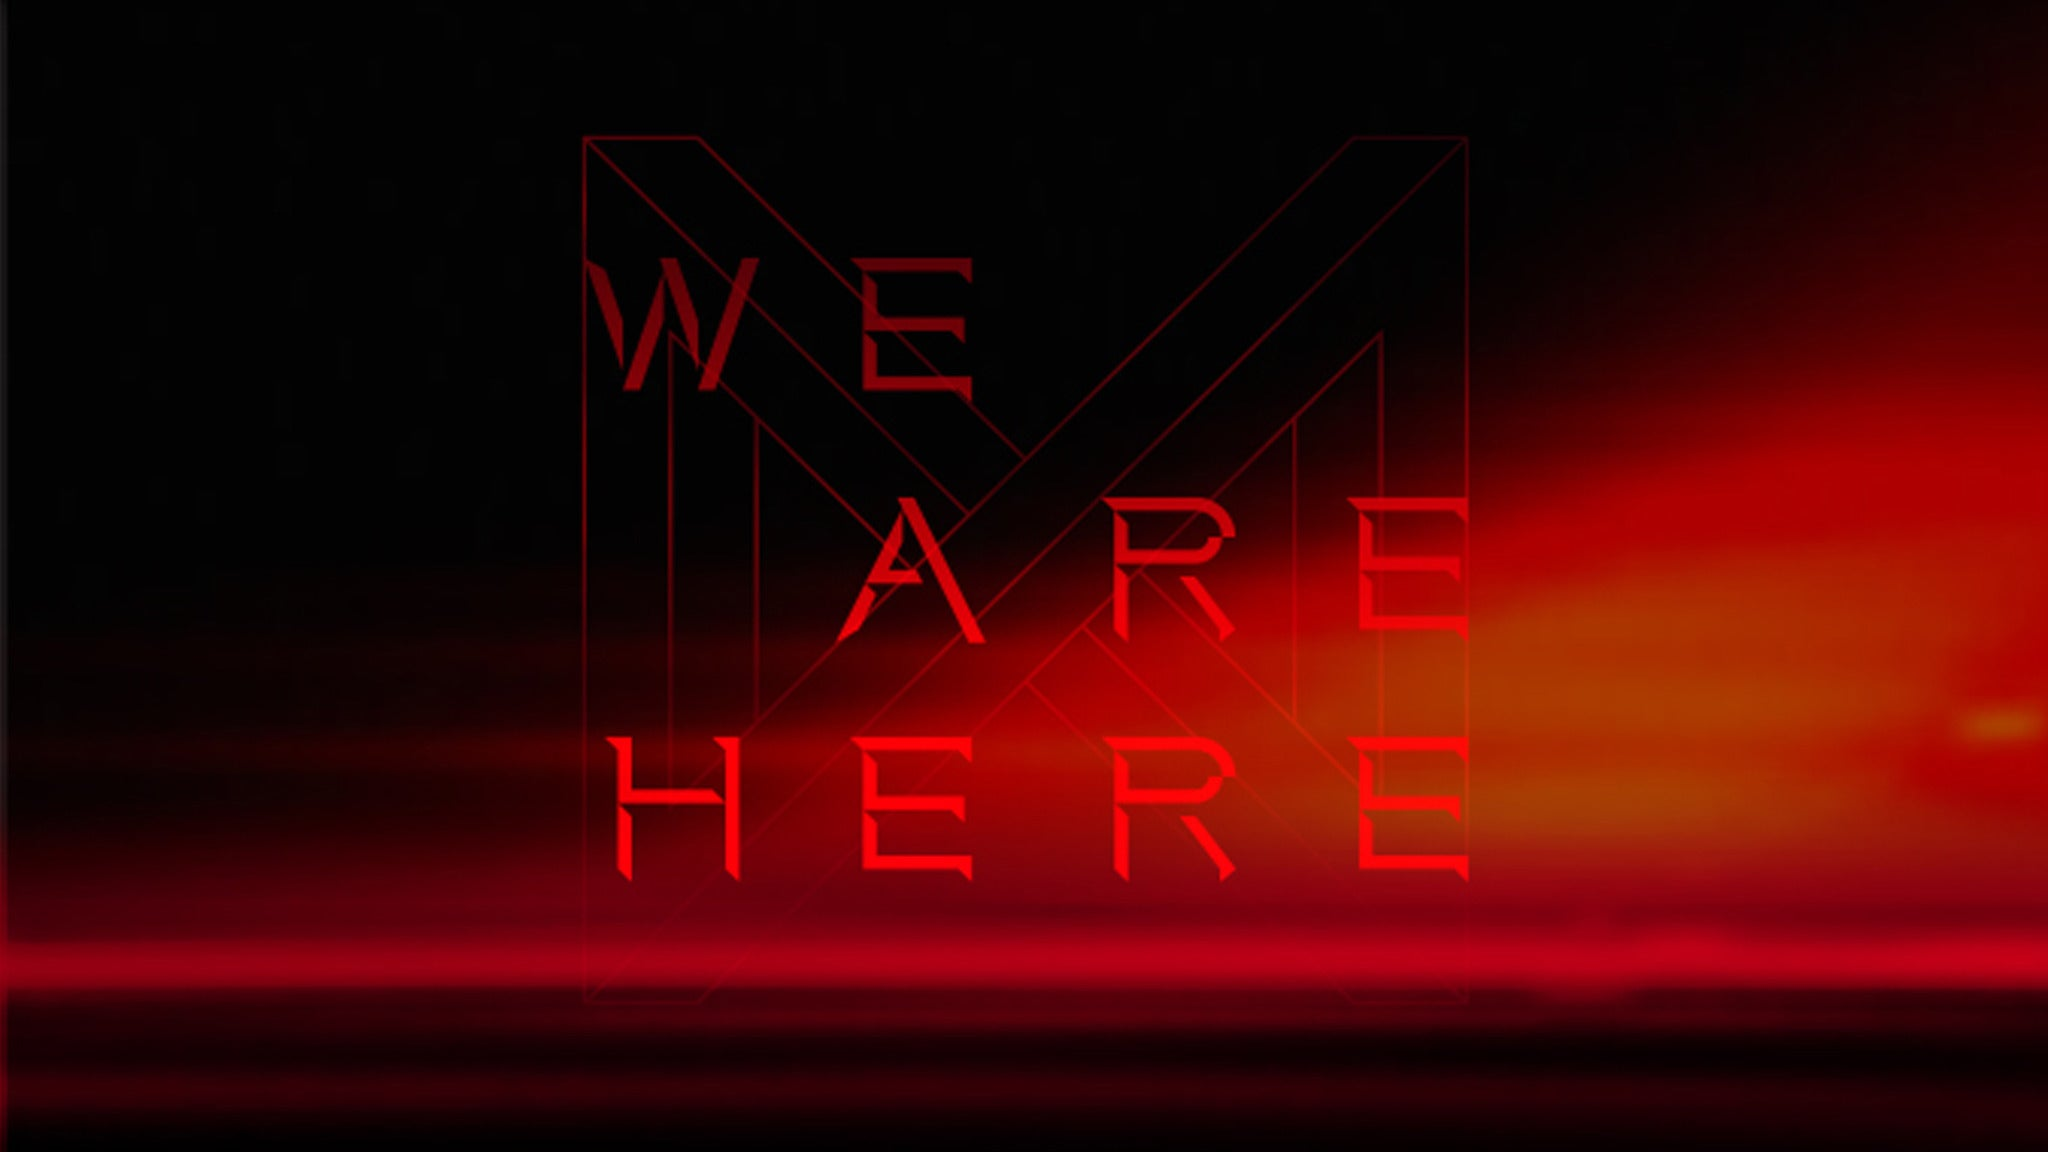 2019 Monsta X World Tour 'We Are Here'